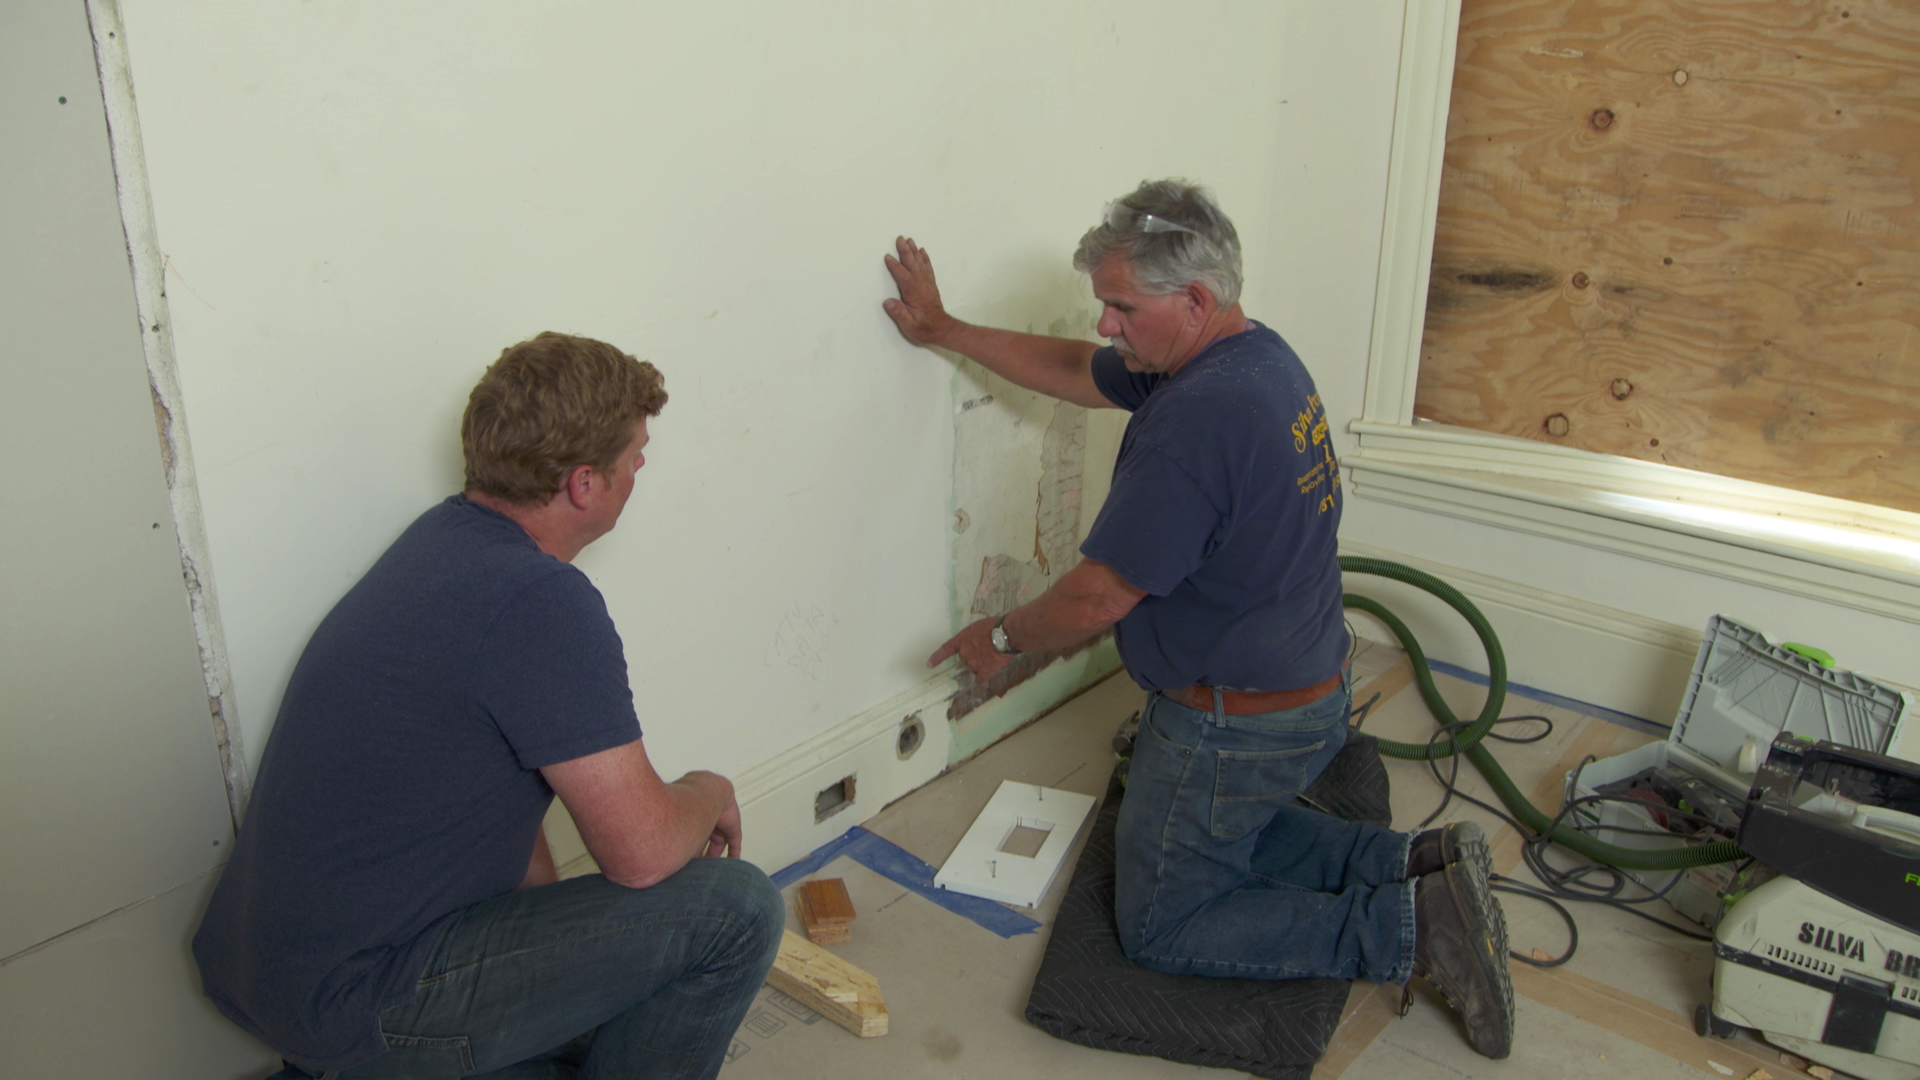 Repairing a baseboard with a patch